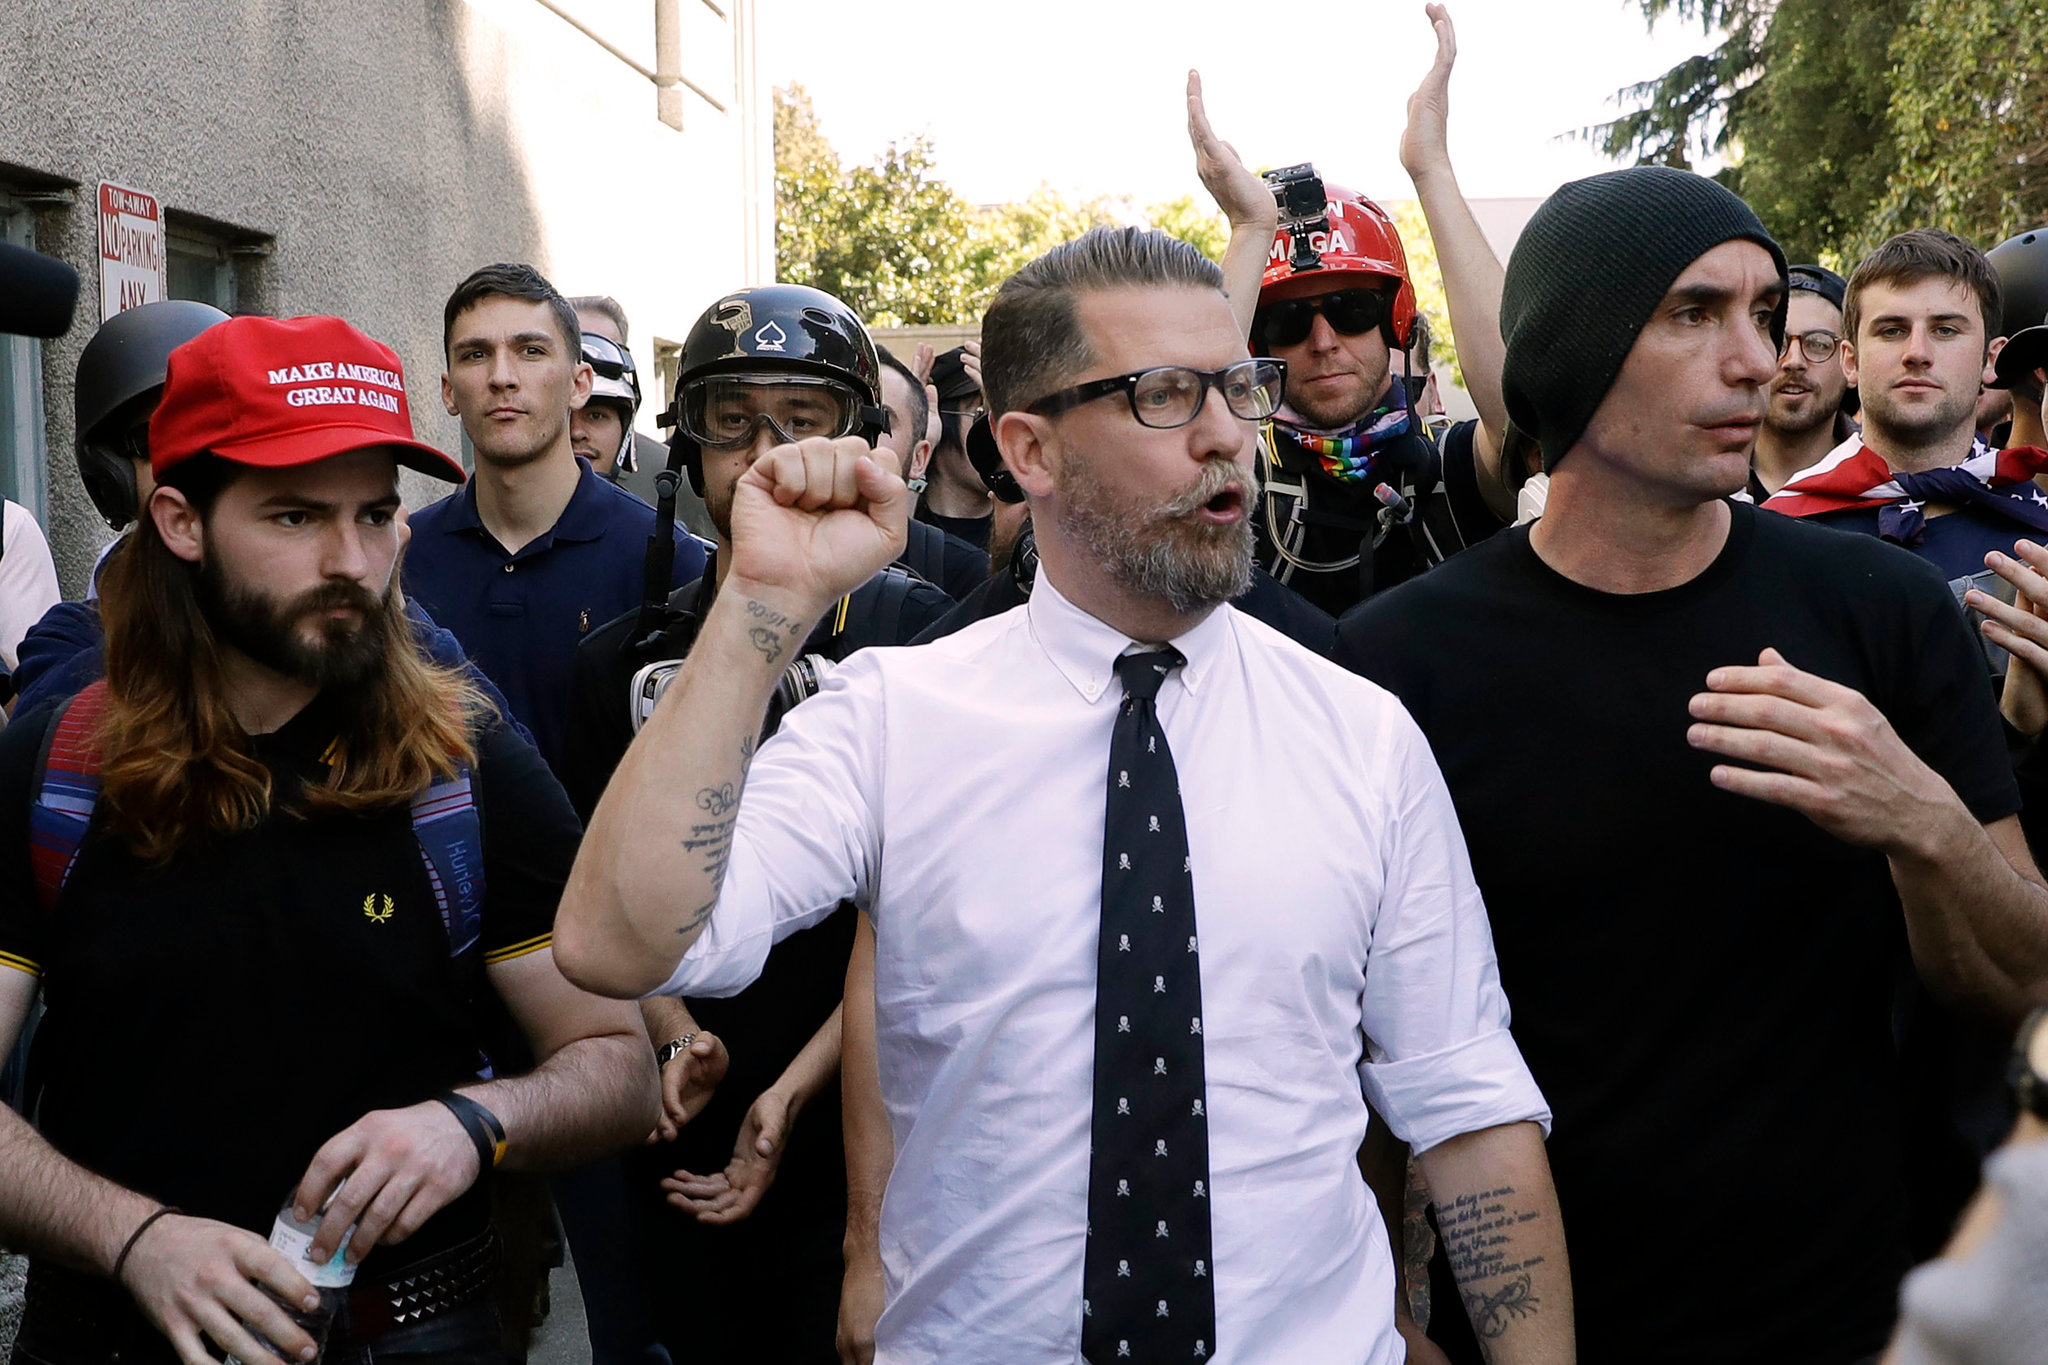 Who are 'Proud Boys'? Why are they called 'terrorists' and not 'Antifa'?